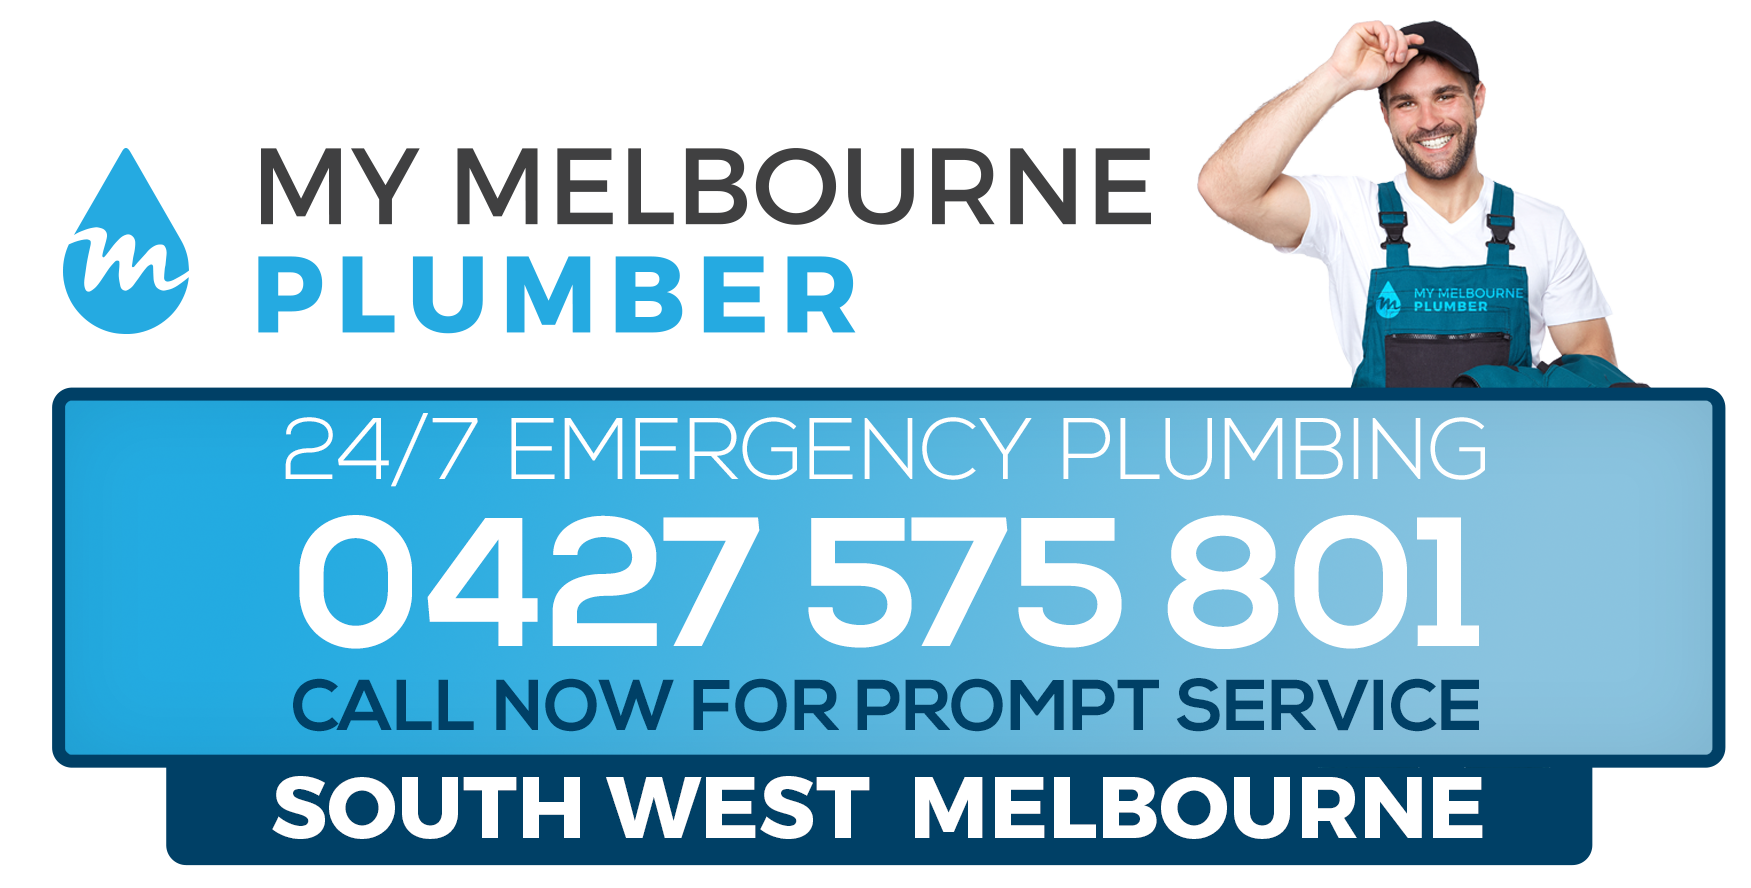 Plumbers South West Melbourne